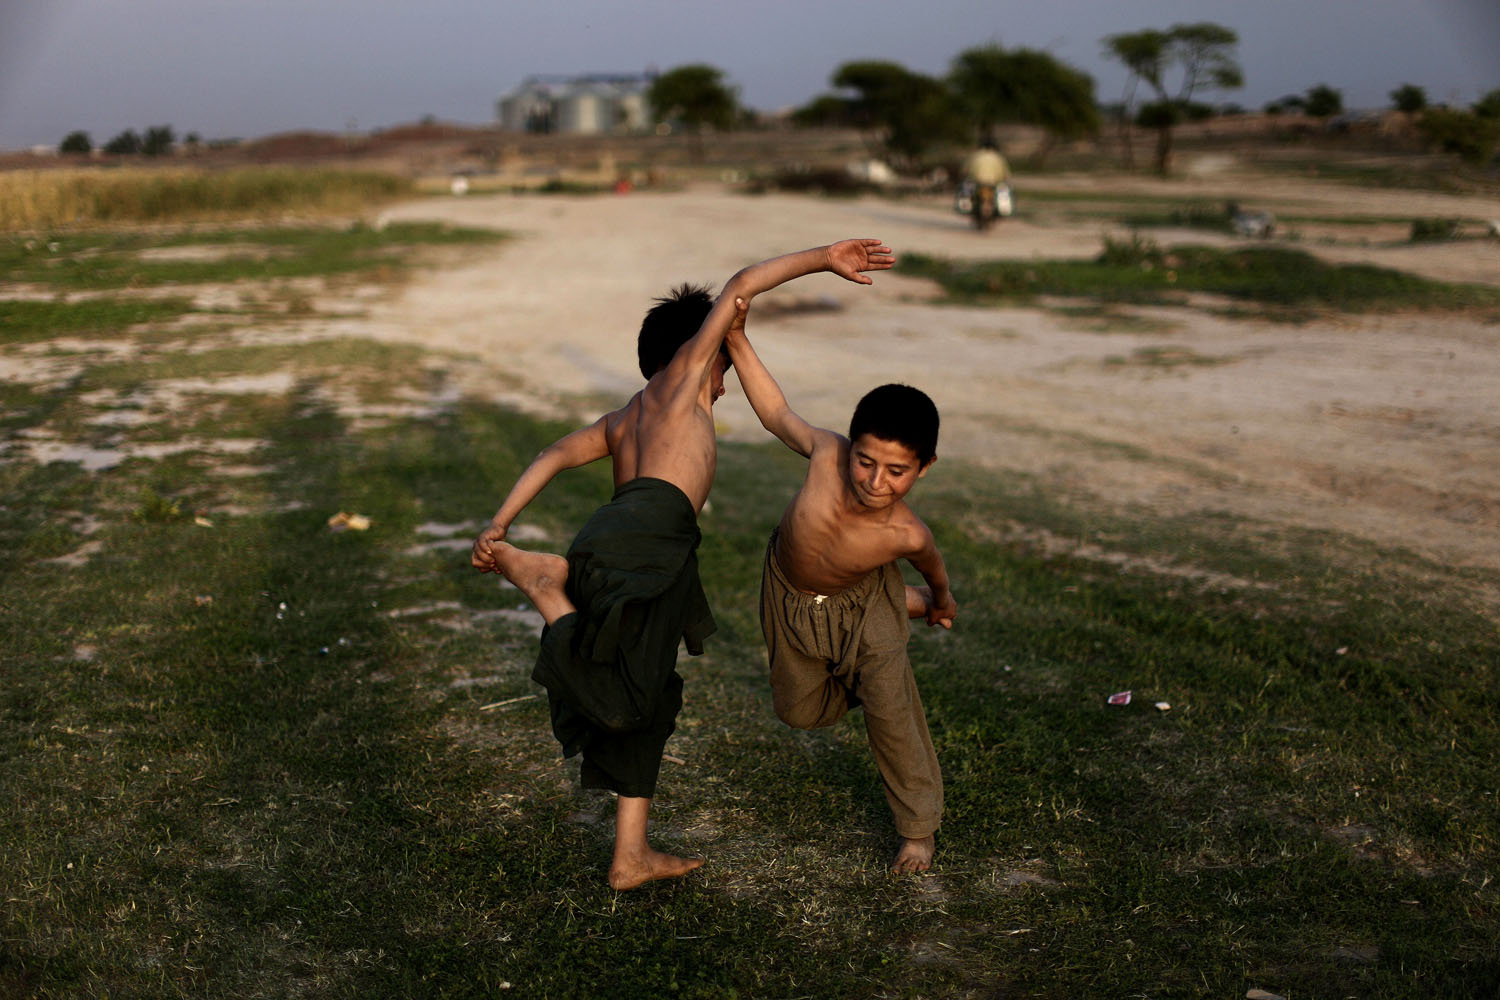 April 22, 2013. Afghan refugee boys play a traditional fighting game on the outskirts of Islamabad.